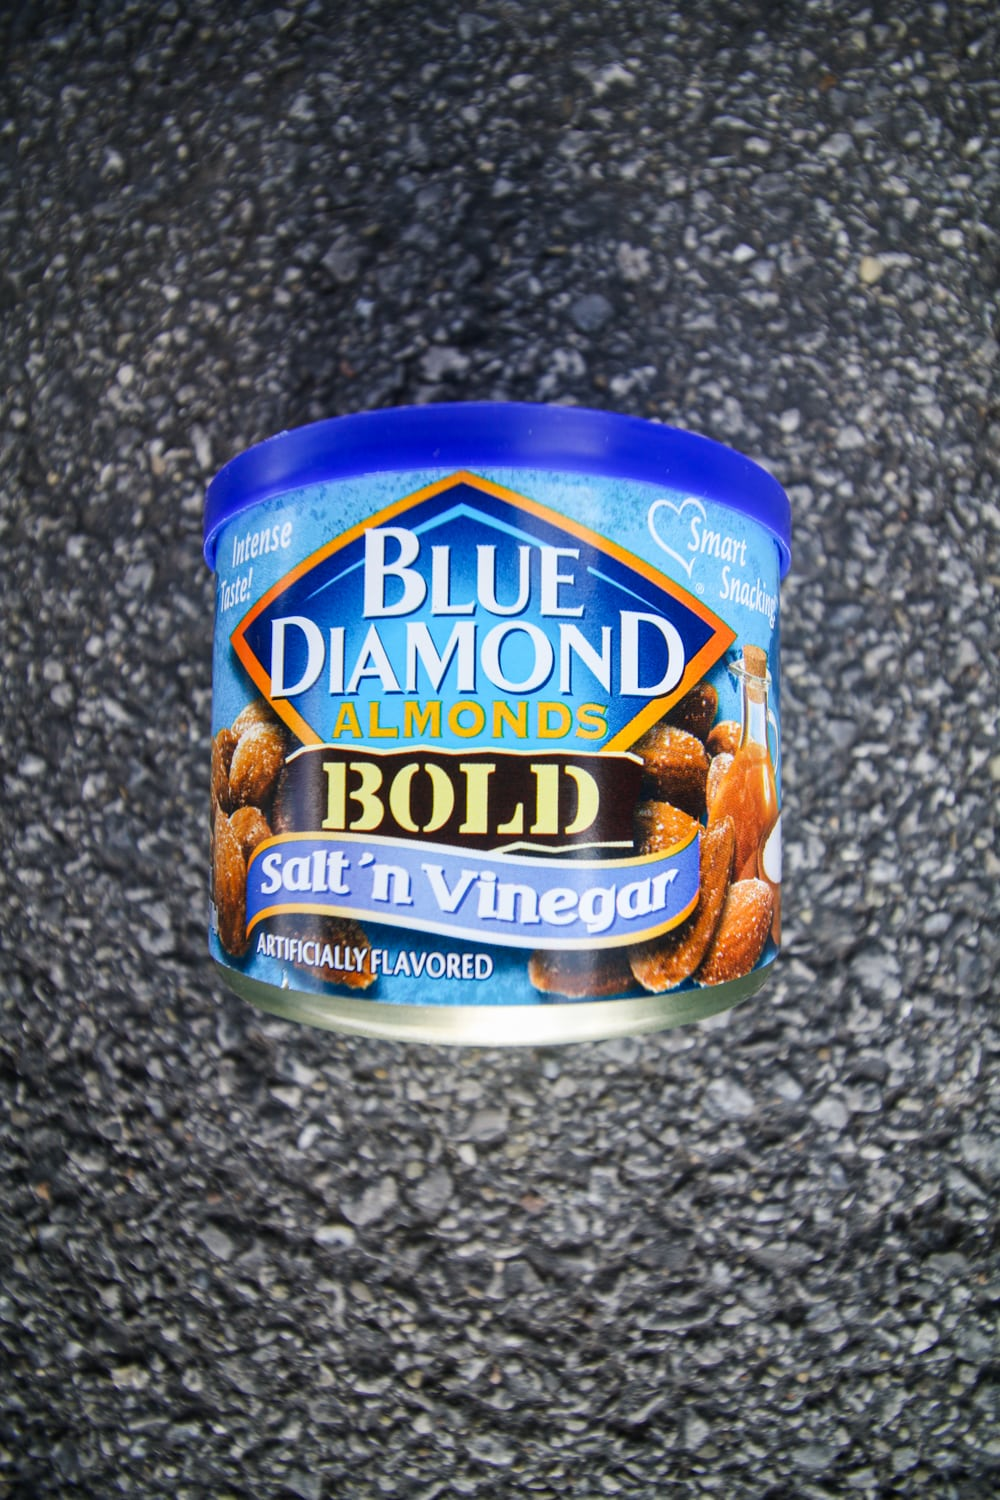 A container of salt and vinegar almonds.